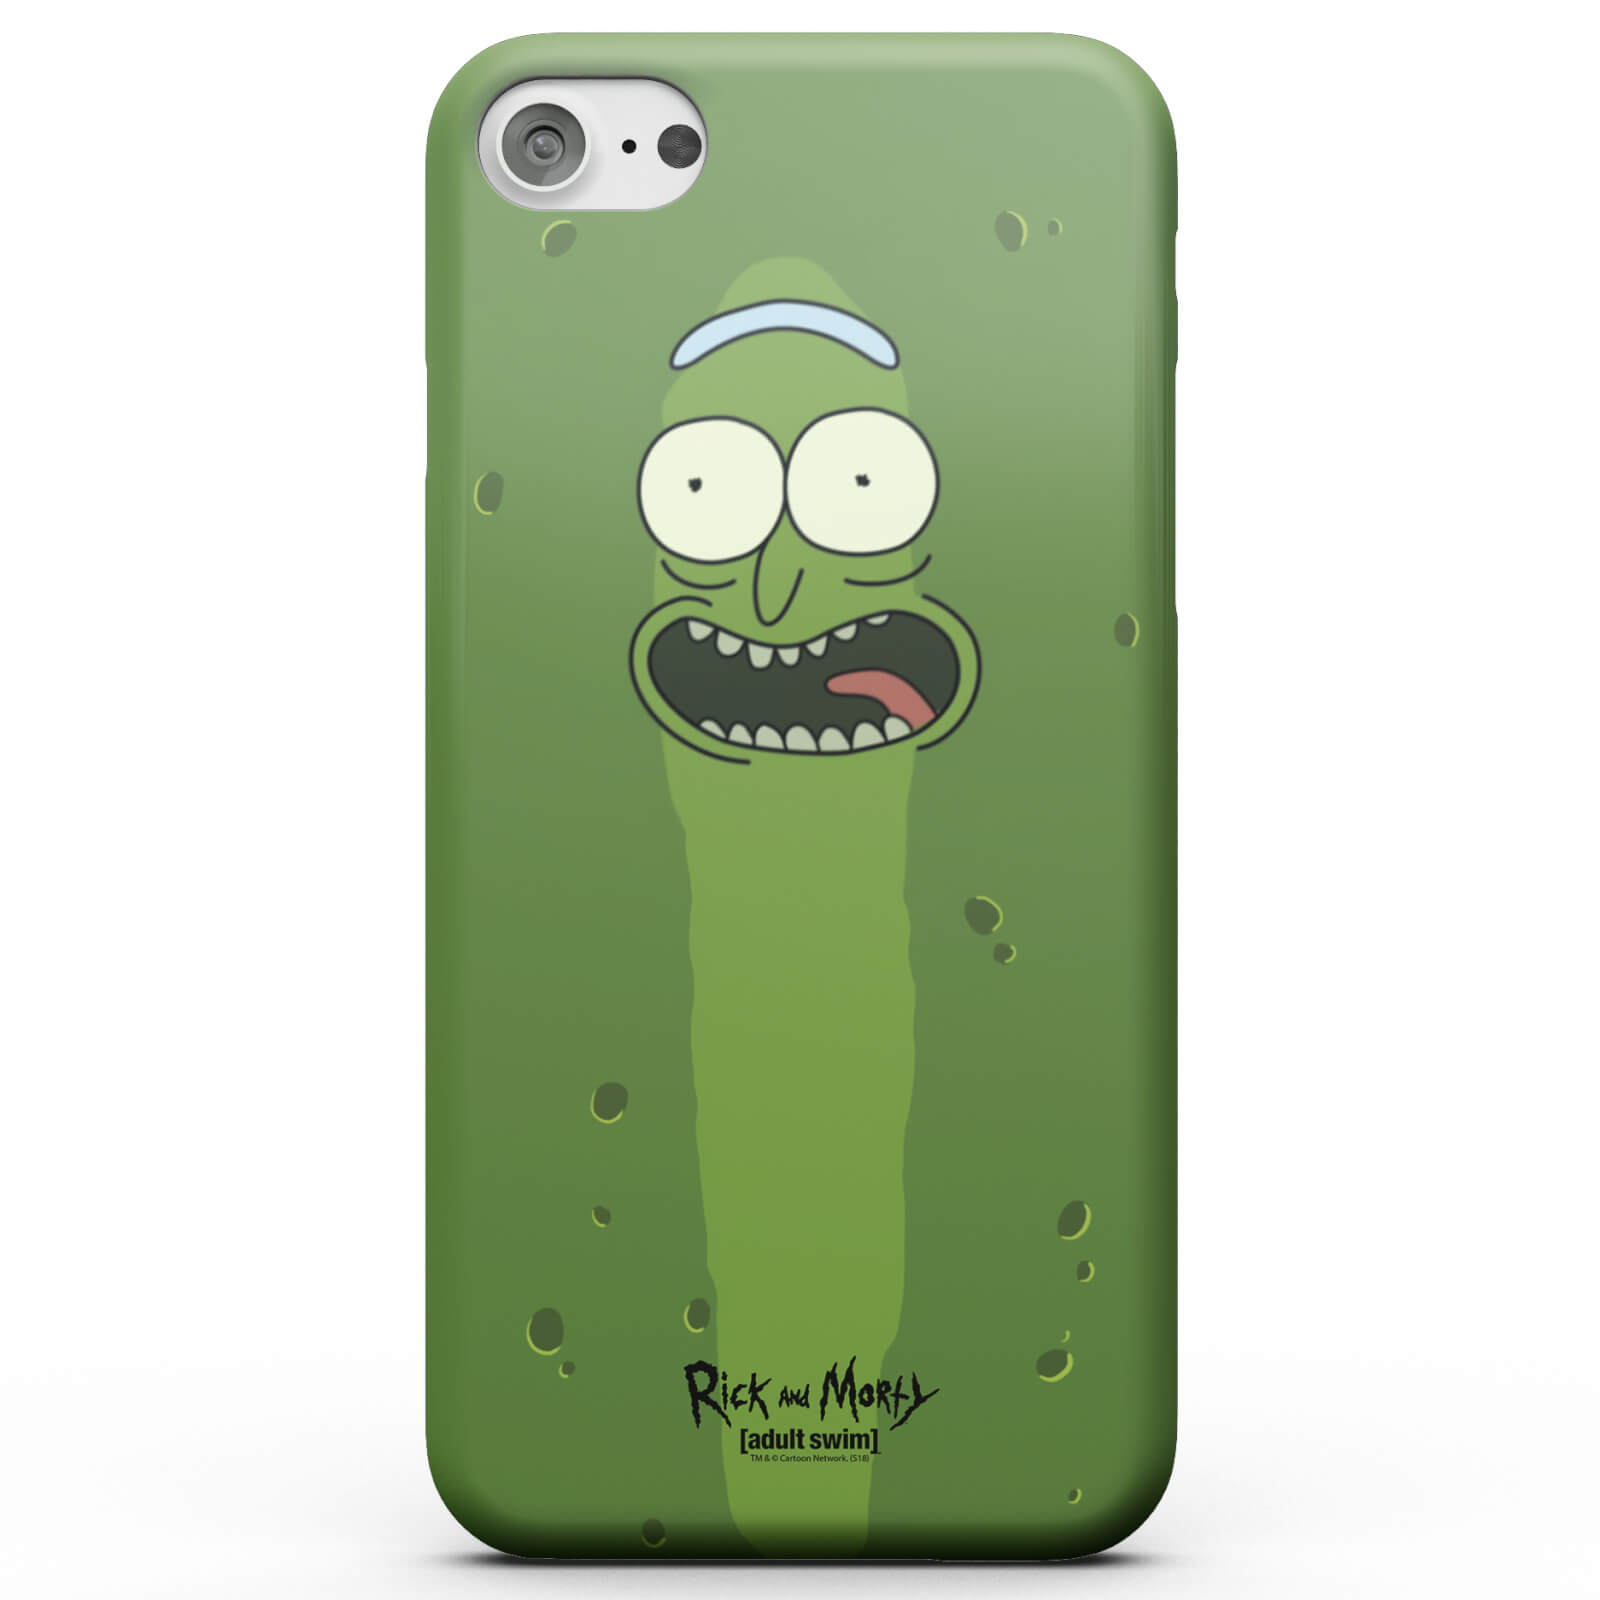 Funda Móvil Rick y Morty Pickle Rick para iPhone y Android - iPhone 7 Plus - Carcasa rígida - Mate de Rick and Morty